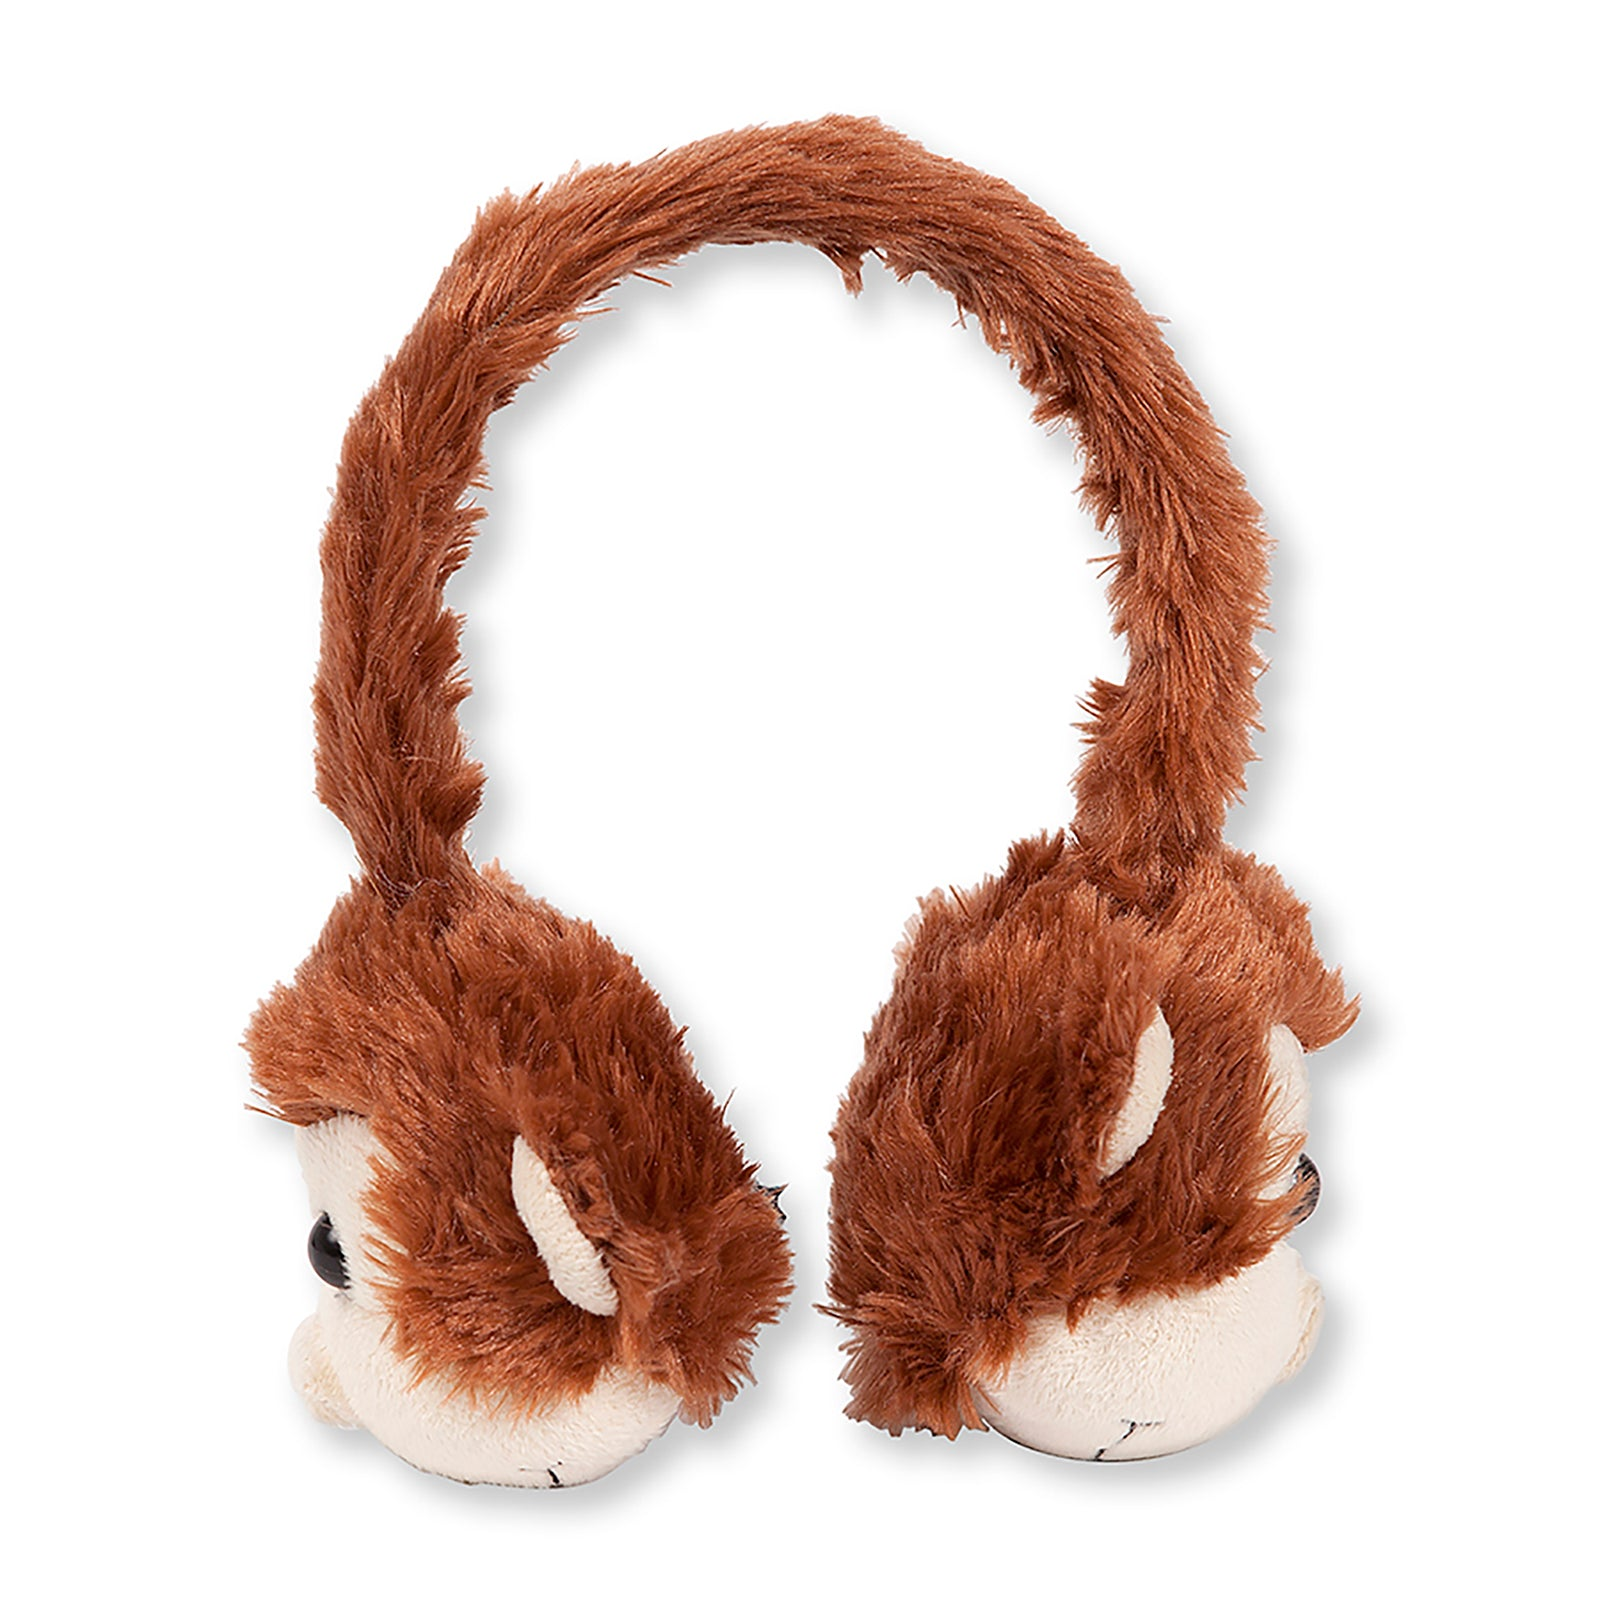 Animalz Ear Headphones Monkey | Over-Ear Headphones | Retractable Headphone Cable